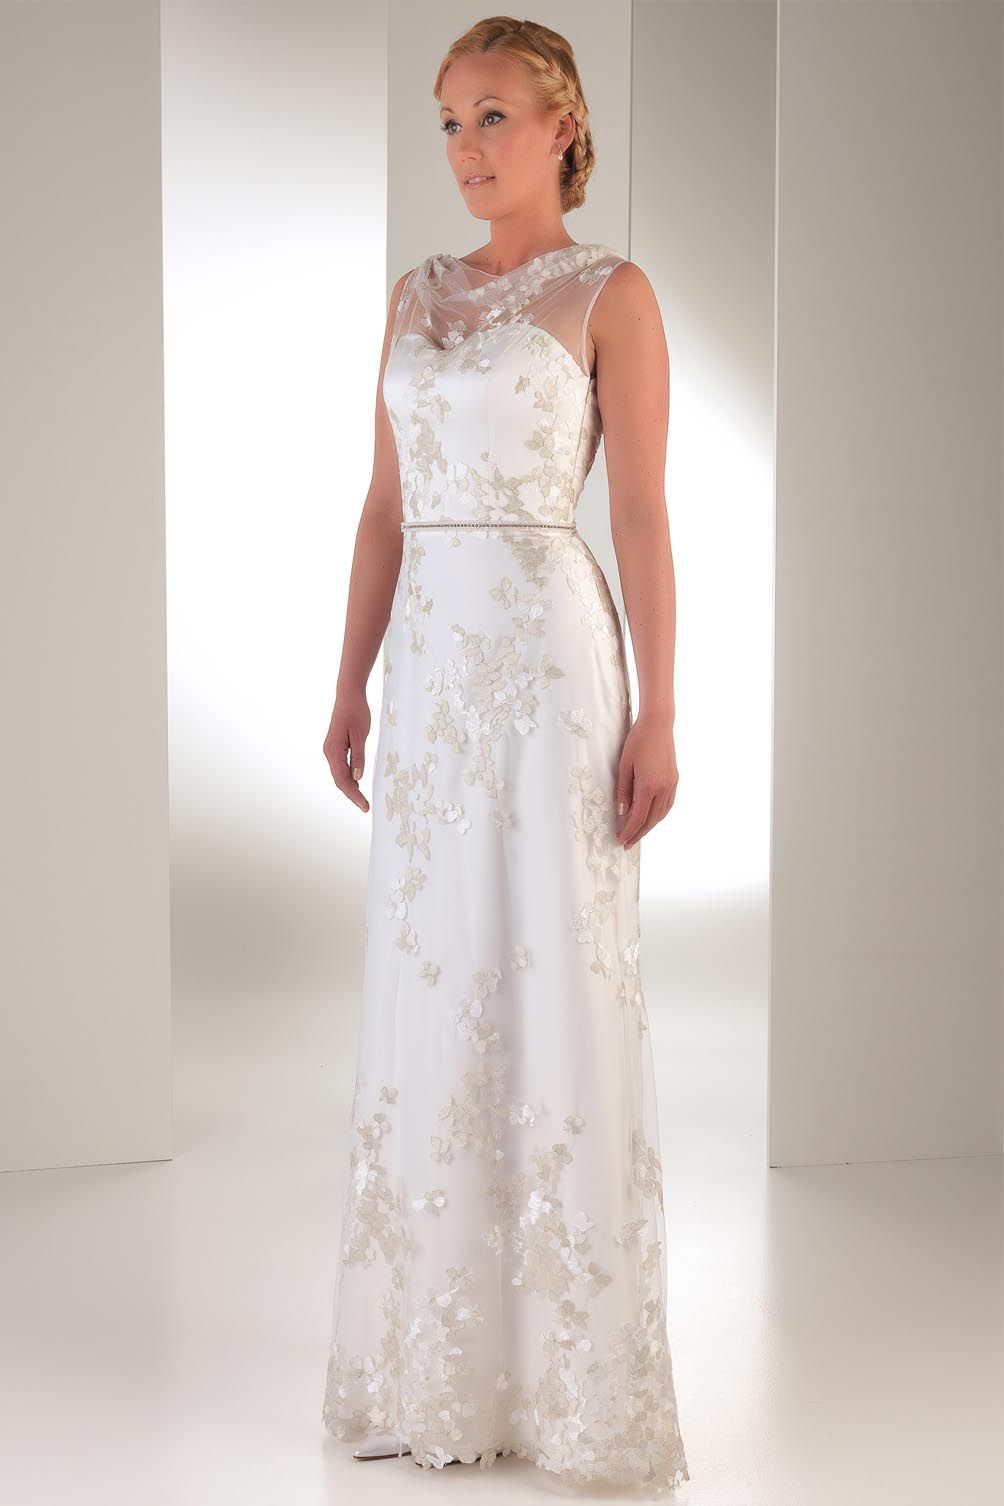 Jarice | Bridal gown | Pinterest | Bridal gowns and Gowns